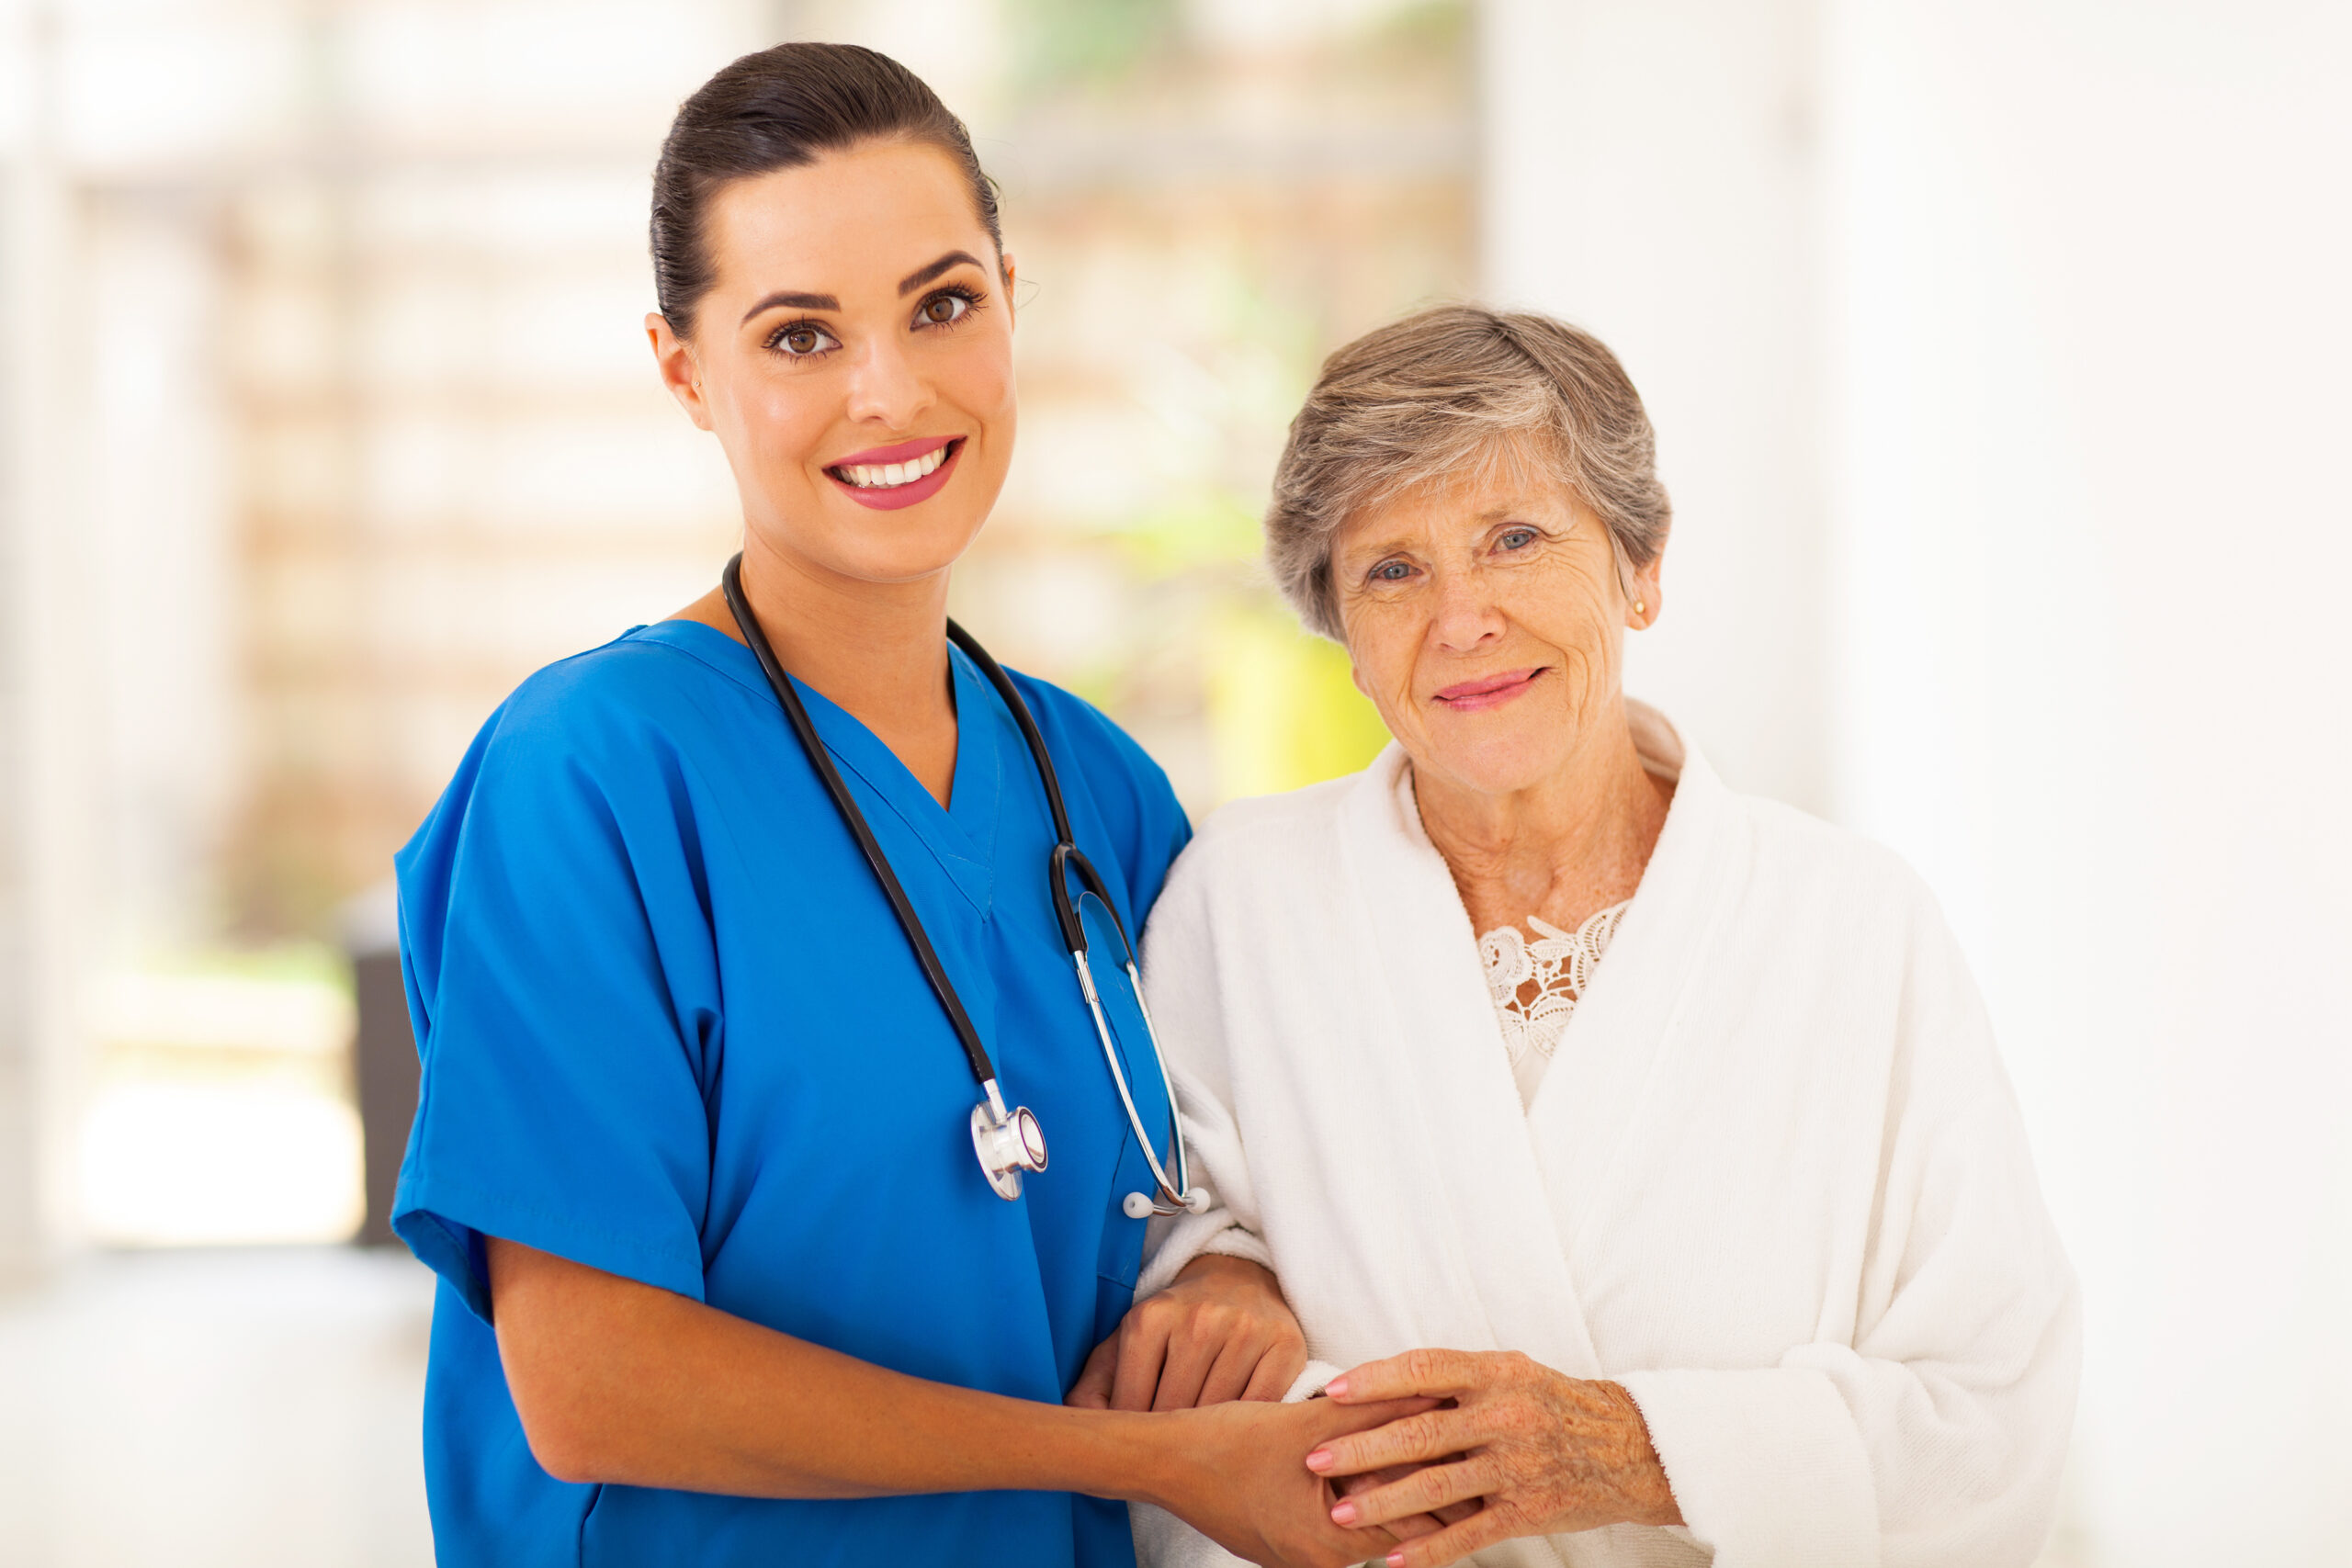 Nurse Holding Hands With Old Lady